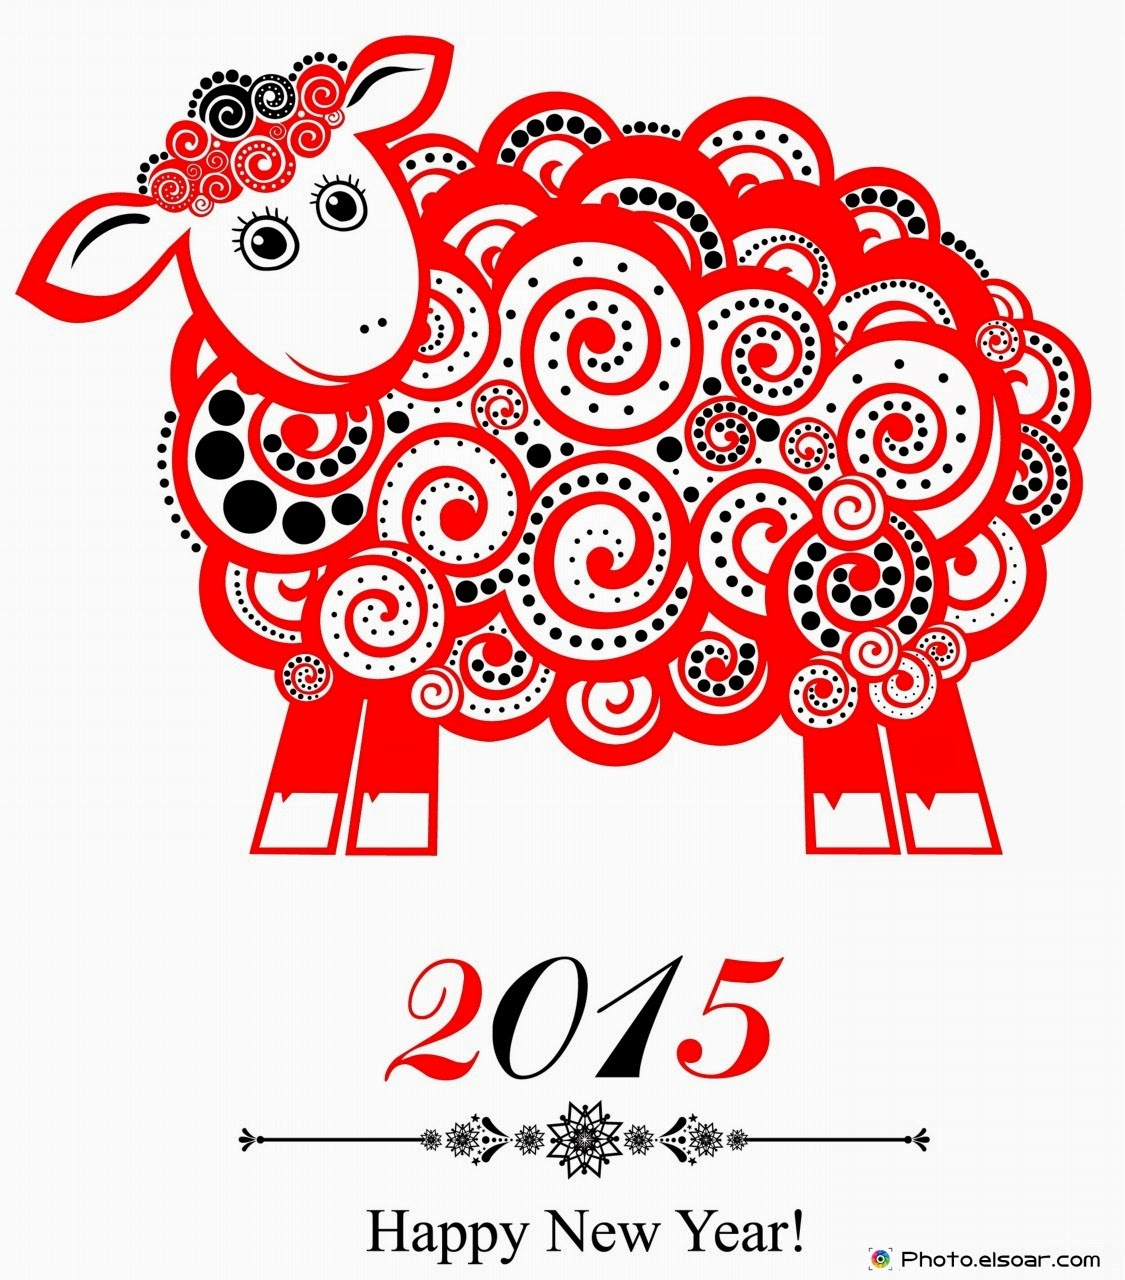 Happy Chinese New Year 2015 Stock Vector - Illustration of ...  Happy Chinese New Year 2015